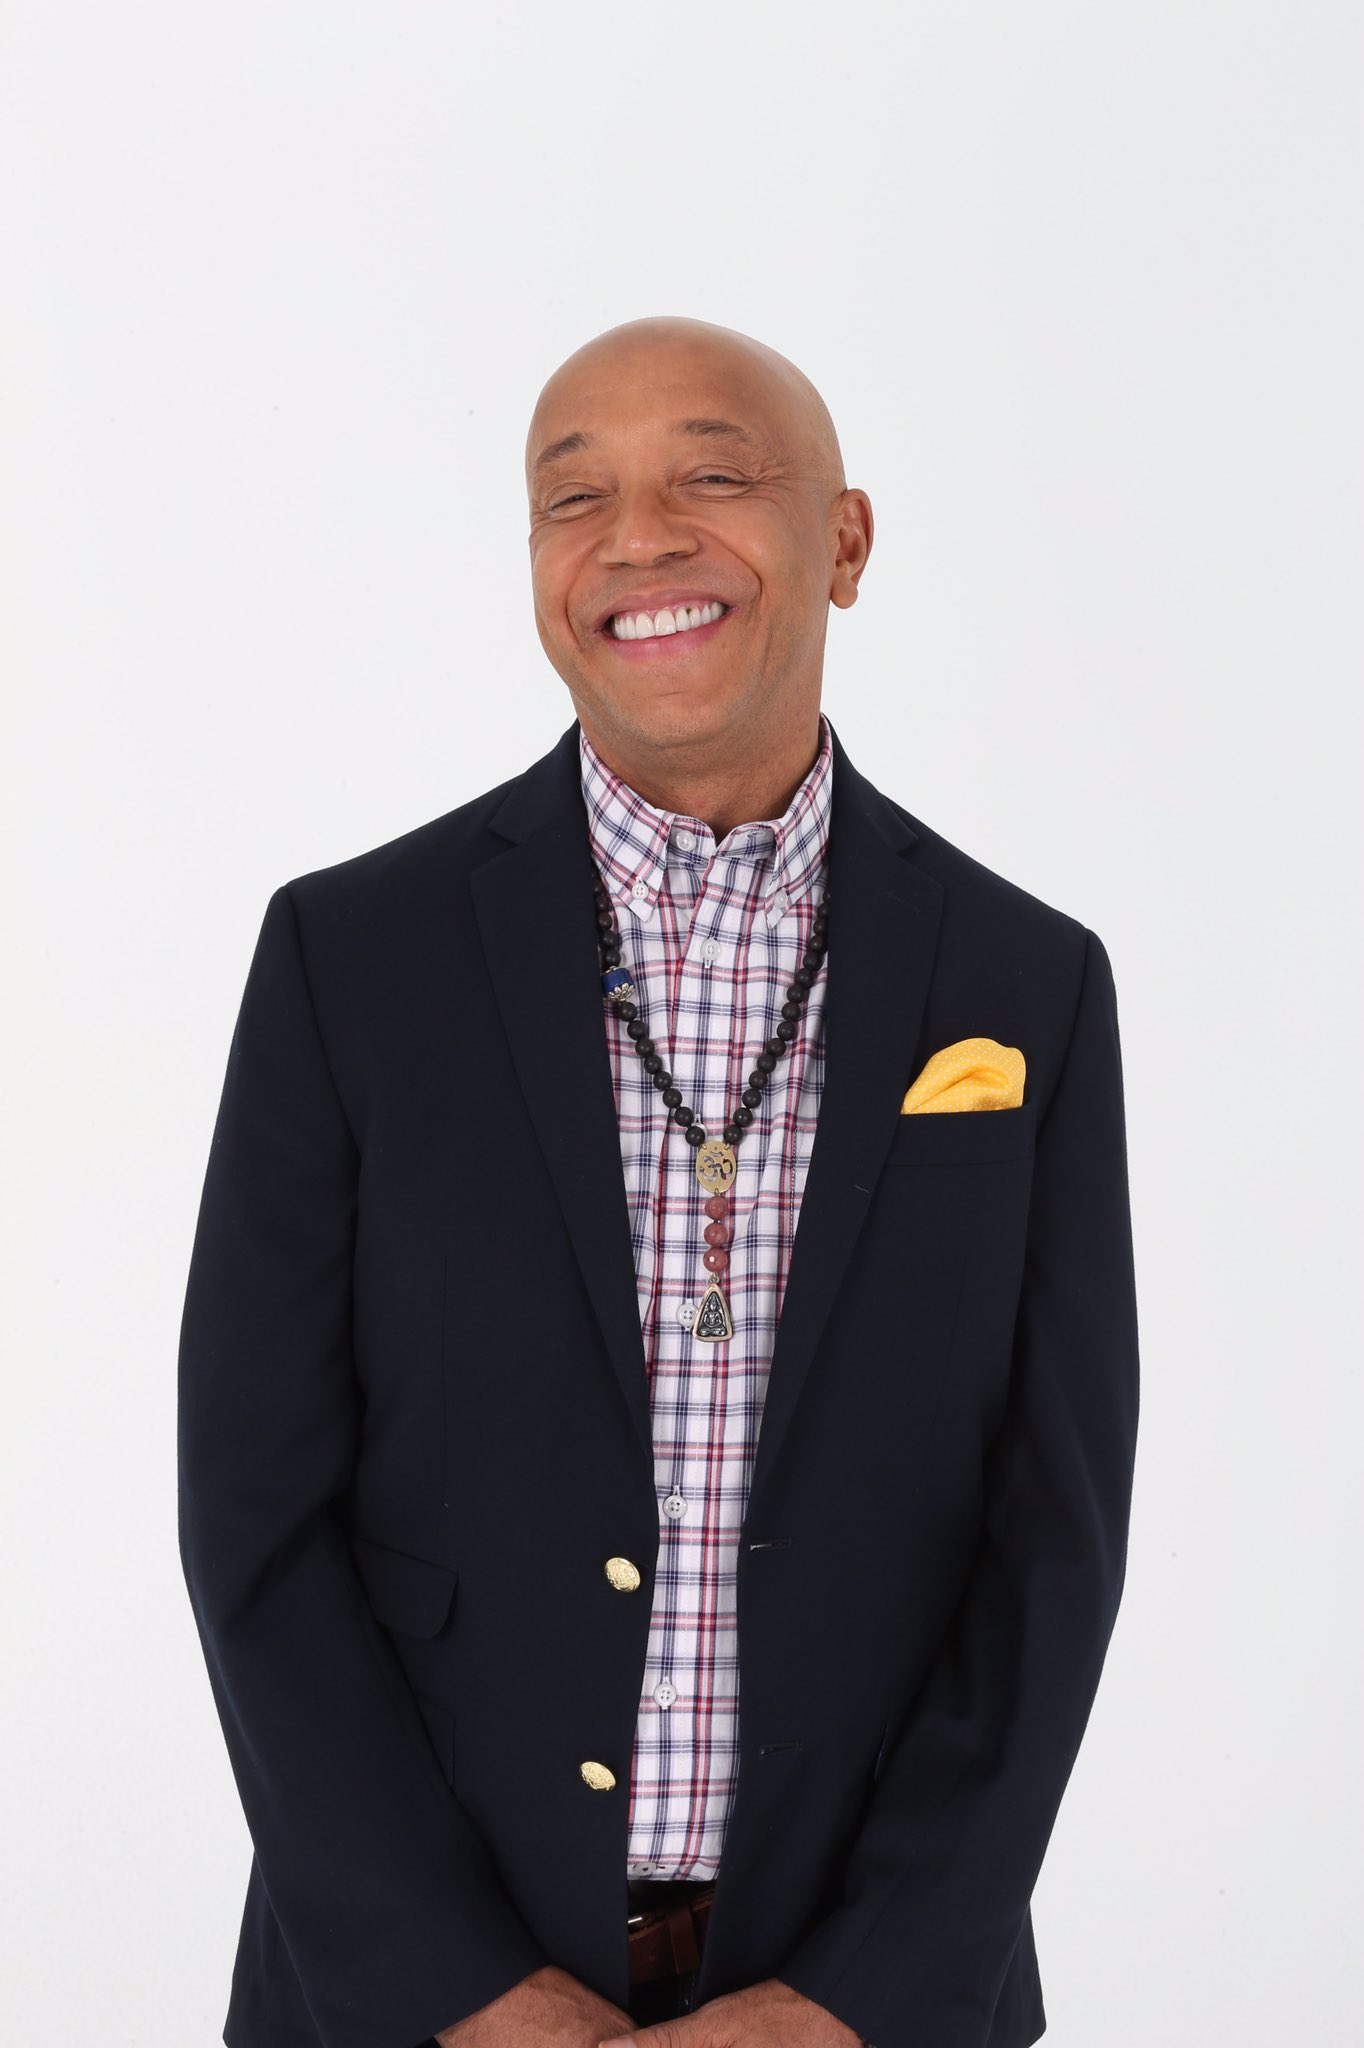 Current mood: Smile, it's Thursday.   Check out the new @argyleculture Spring Collection exclusively at @jcpenney. https://t.co/MW7NUx45Id